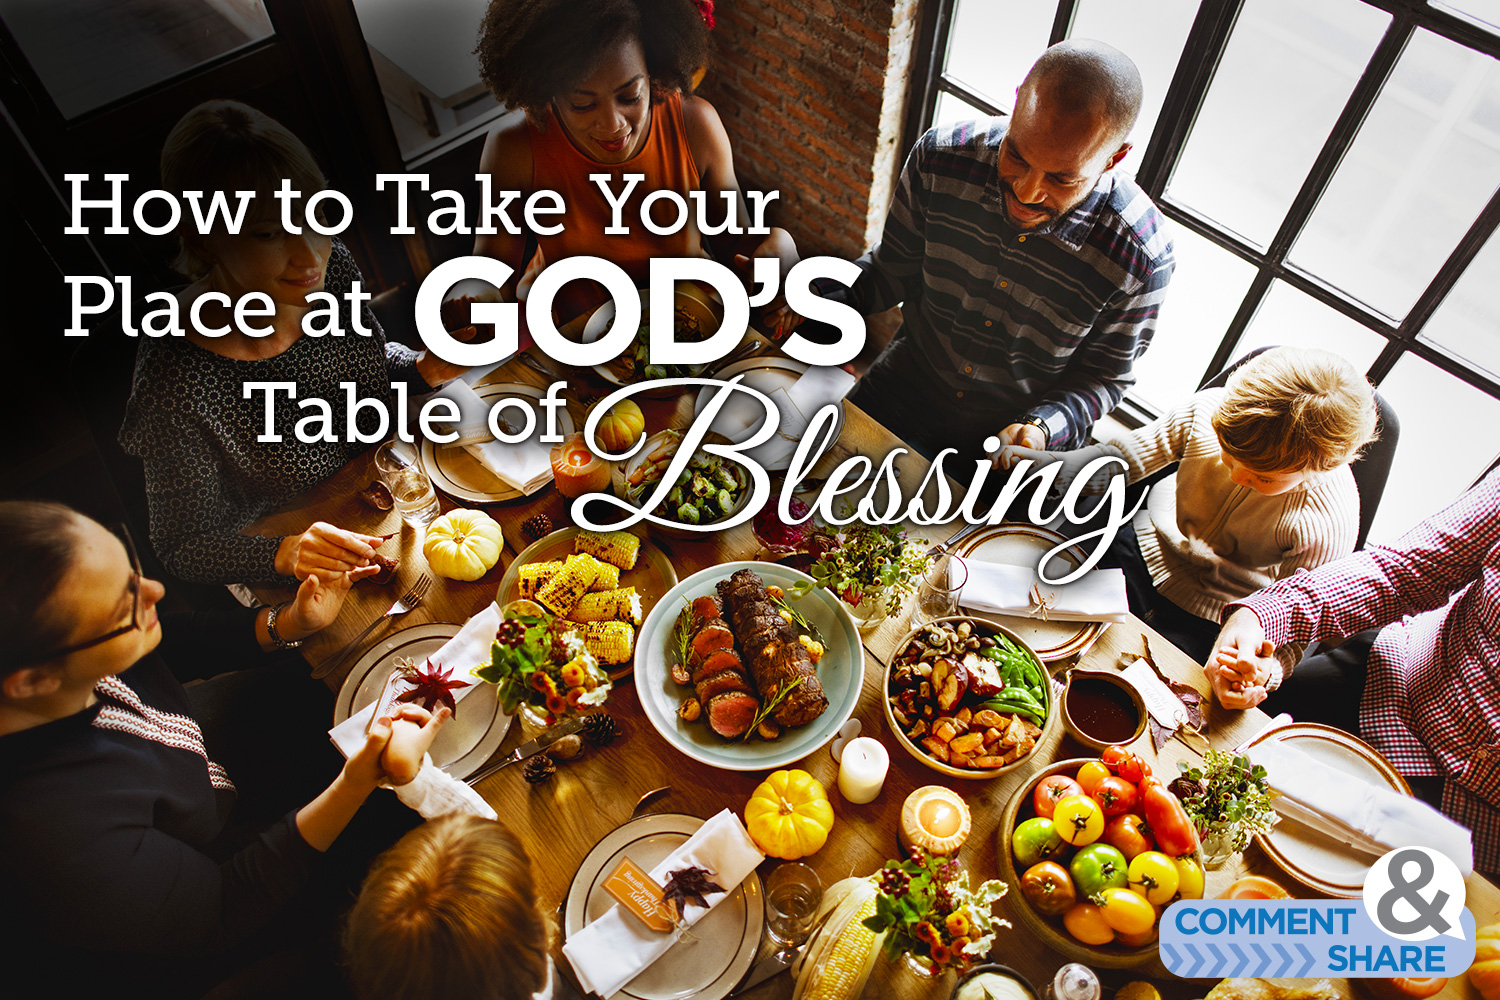 How to Take Your Place at God's Table of BLESSING